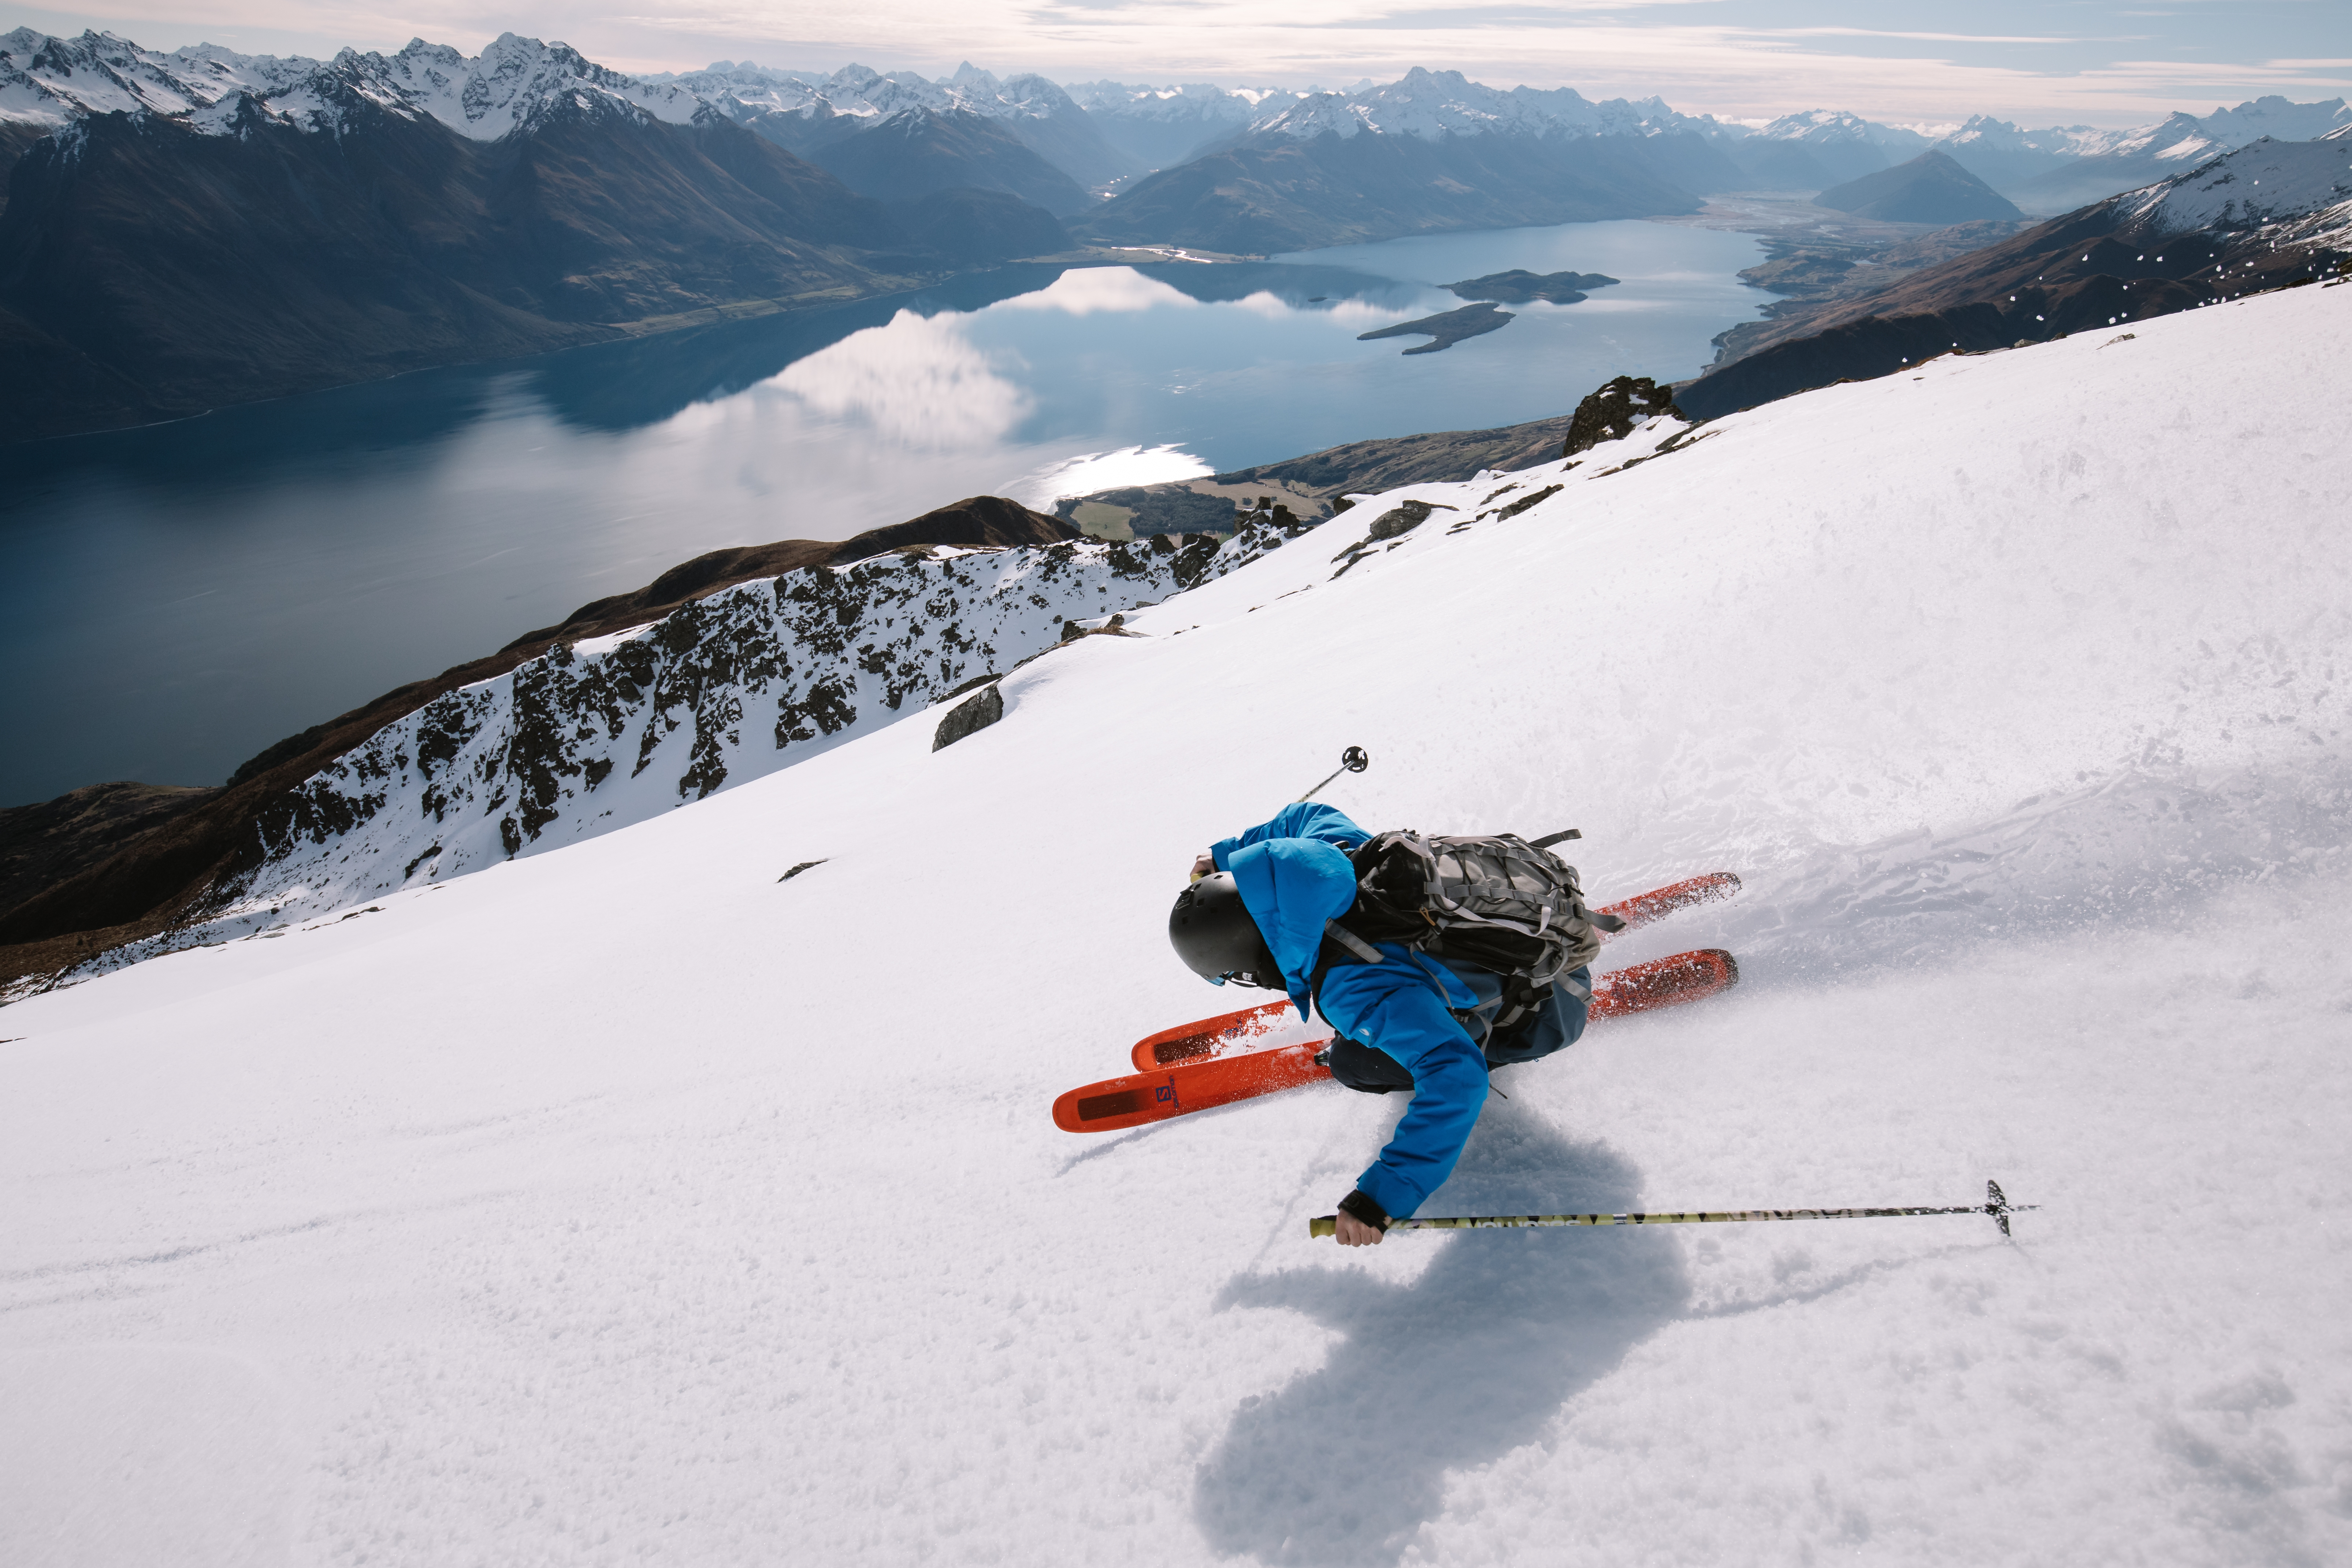 How To Prepare For An Epic Backcountry Skiing Experience In Queenstown